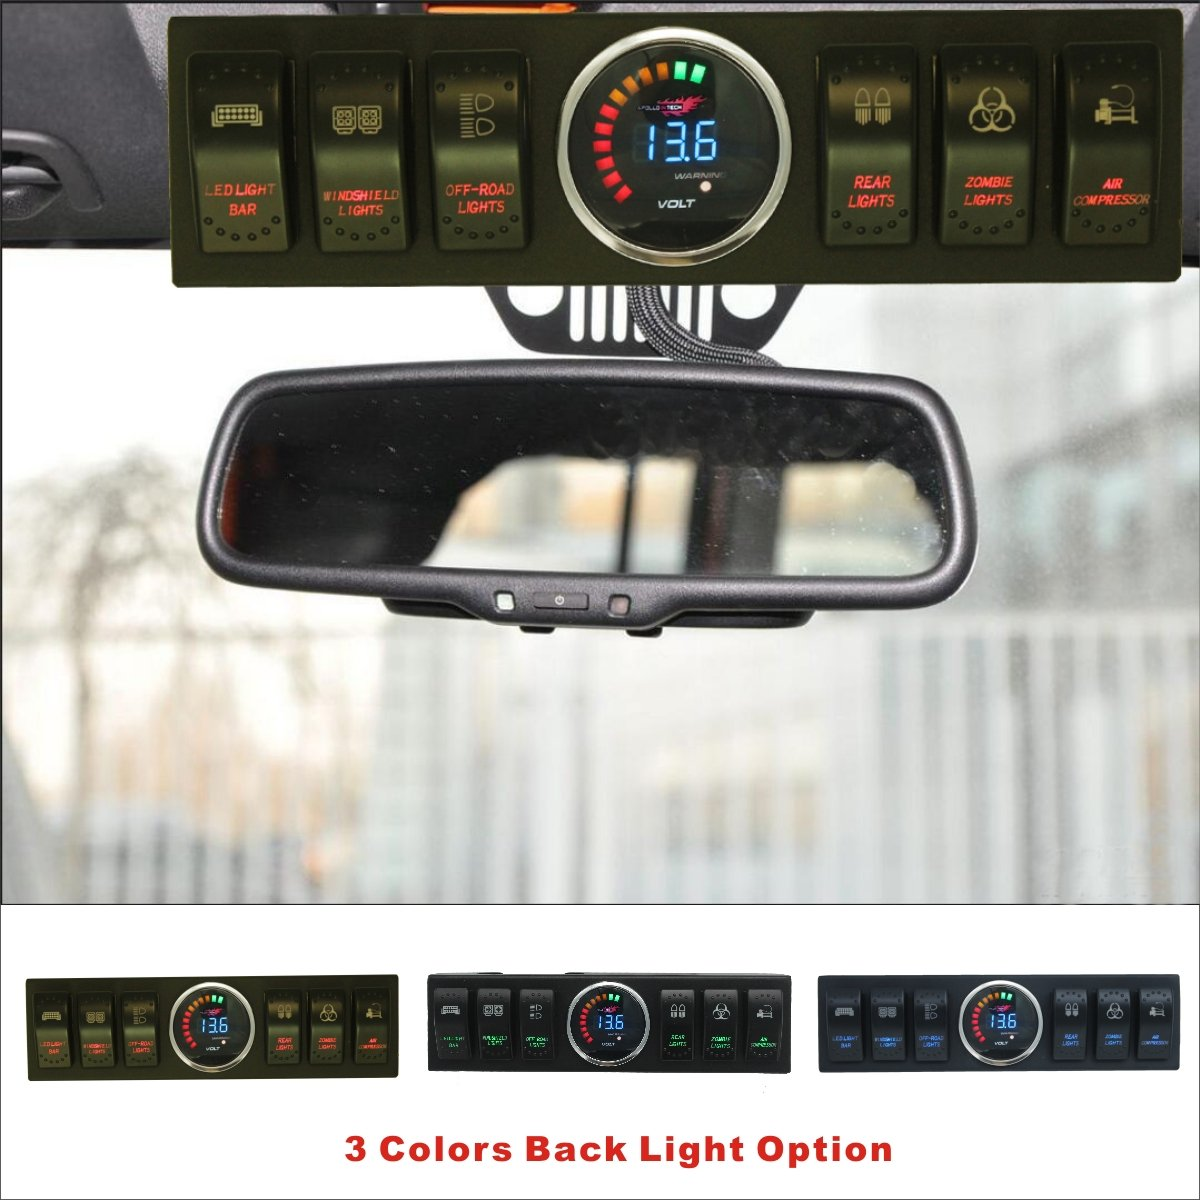 Apollointech Jeep Wrangler JK & JKU 2009-2017 Overhead 6-Switch Pod / Panel with Control and Source System Red Back Light ( Comes with 10 Laser Switch Covers ) by ApolloIntech